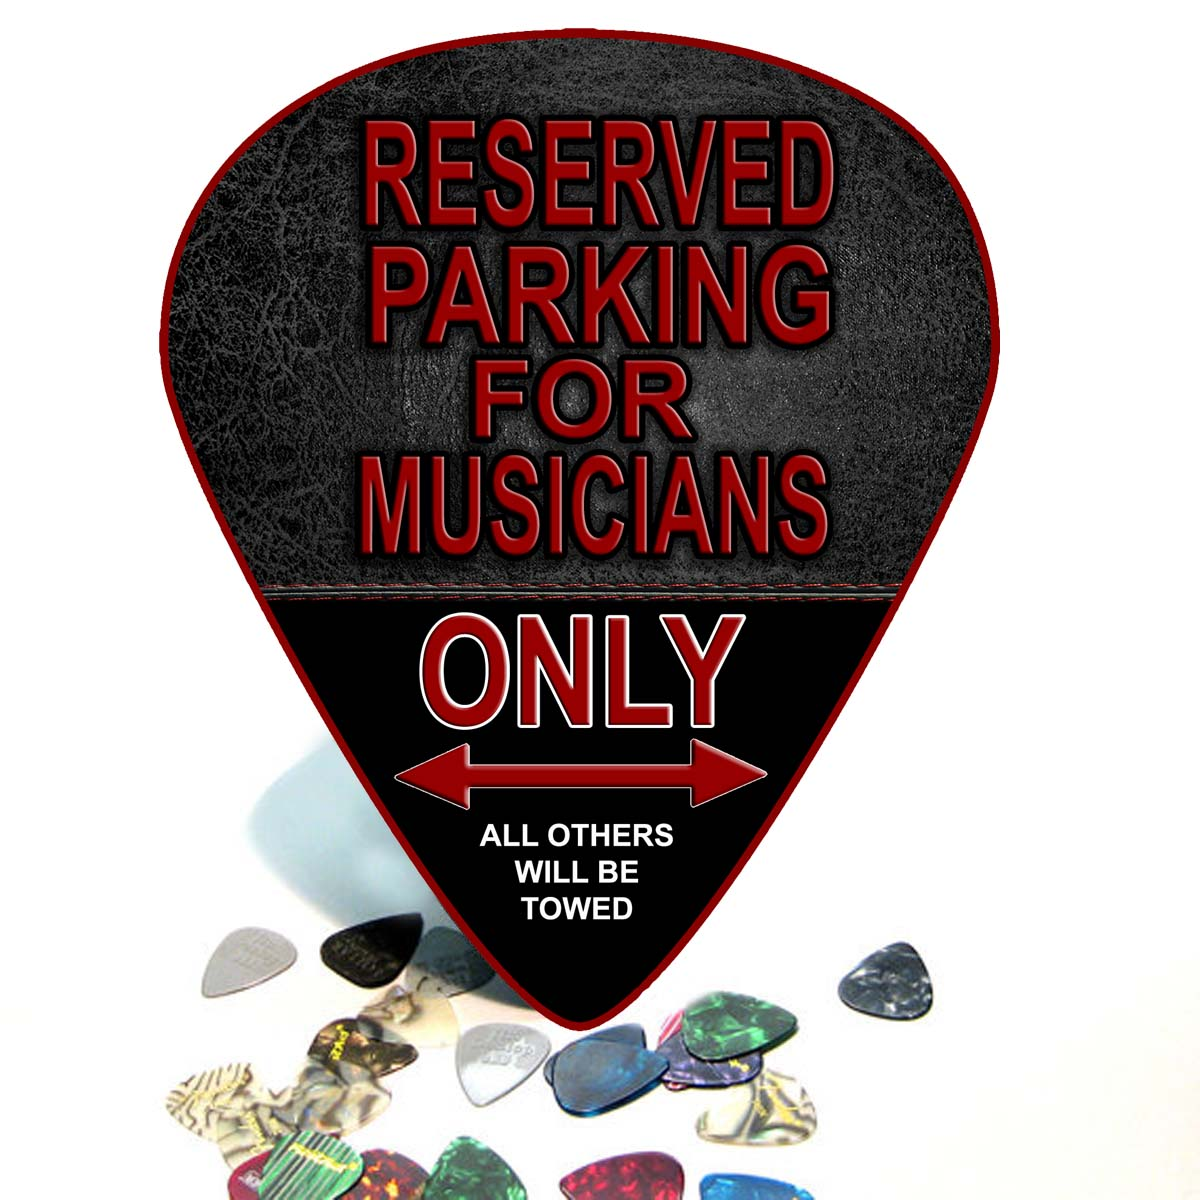 No Parking Guitar Giant Pick Wall Art  - 1126